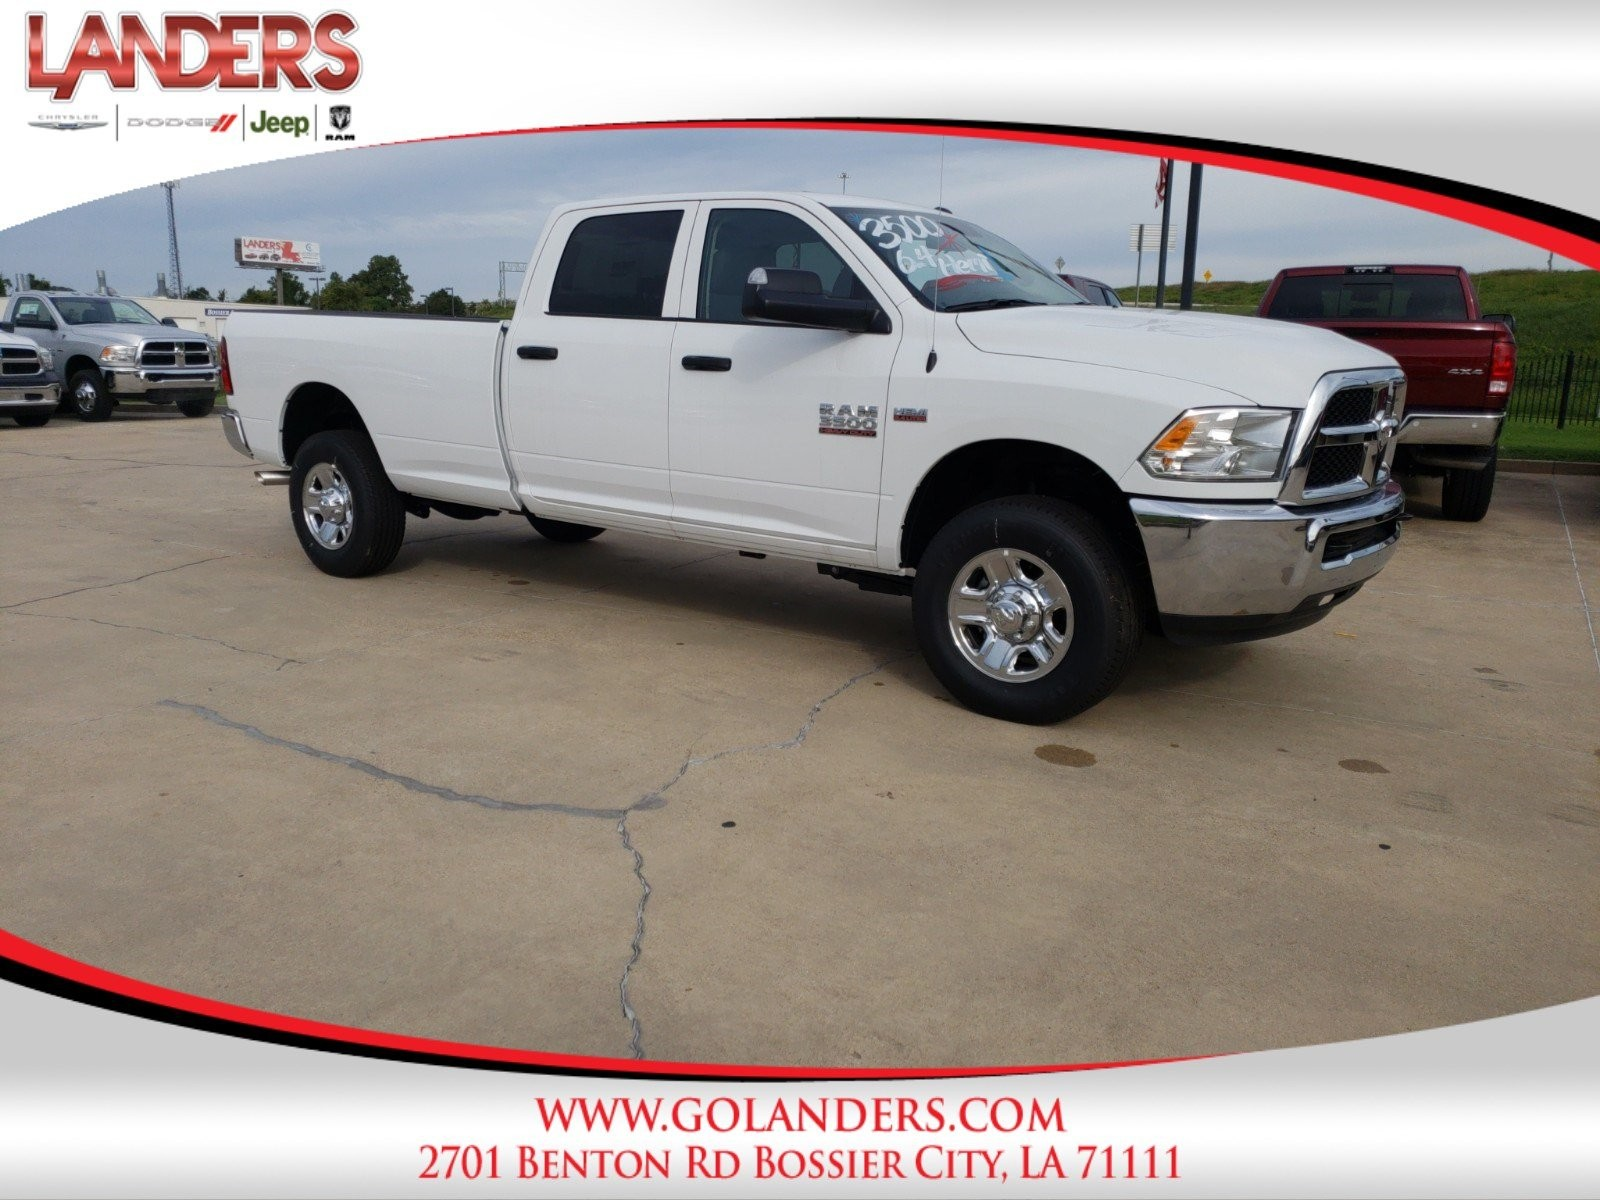 Pickup Truck Inspection Diagram New 2018 Ram 3500 Tradesman Crew Cab In Bossier City Jg Of Pickup Truck Inspection Diagram